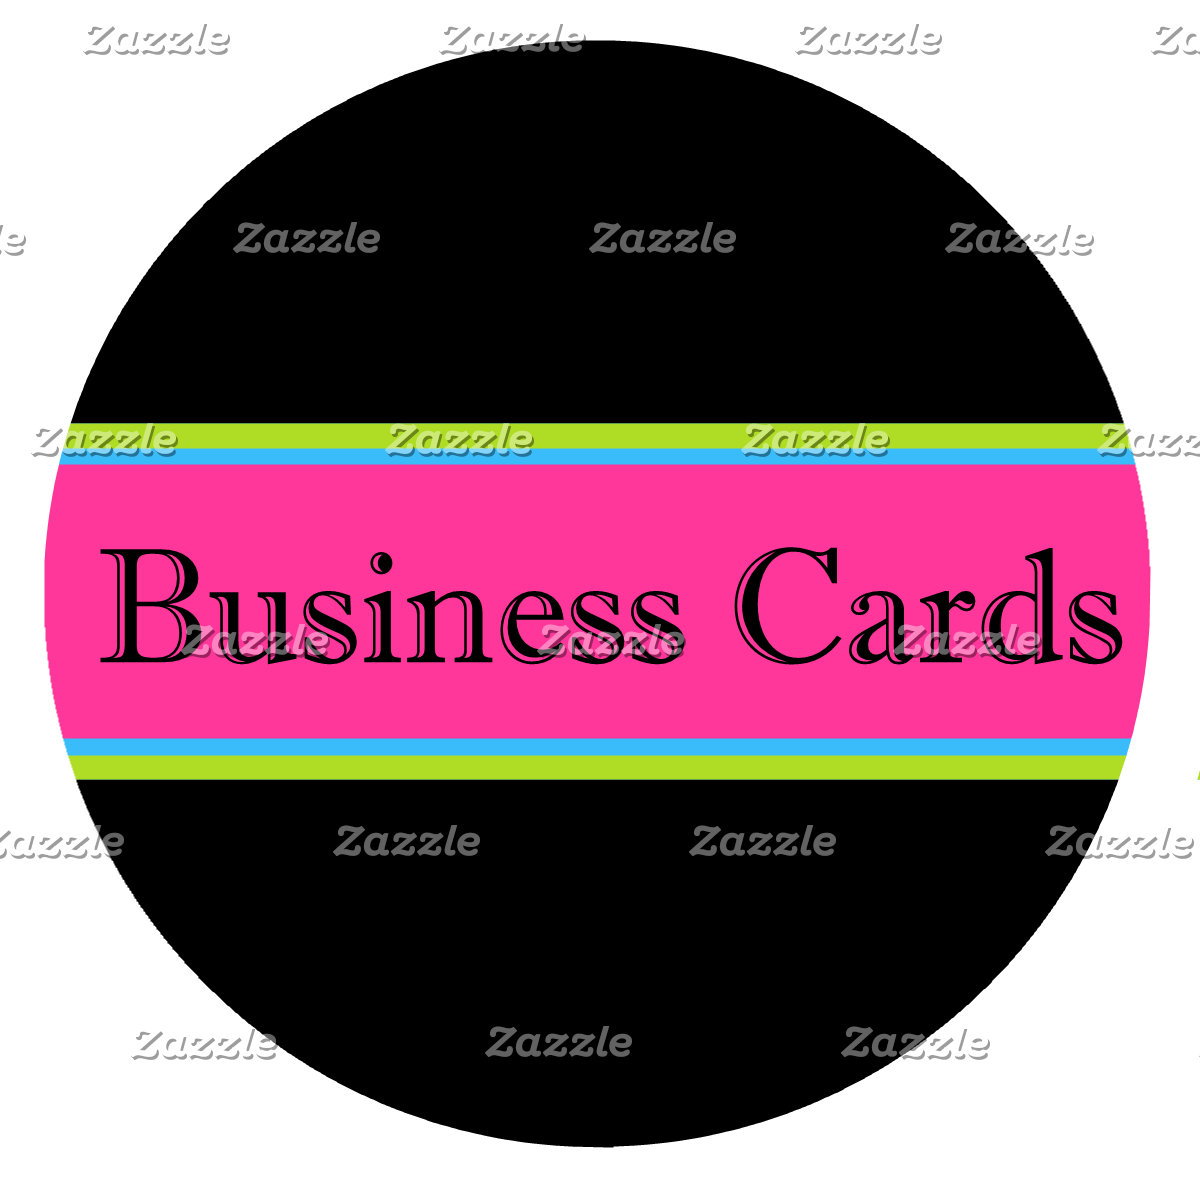 Business Cards/ Calling Cards